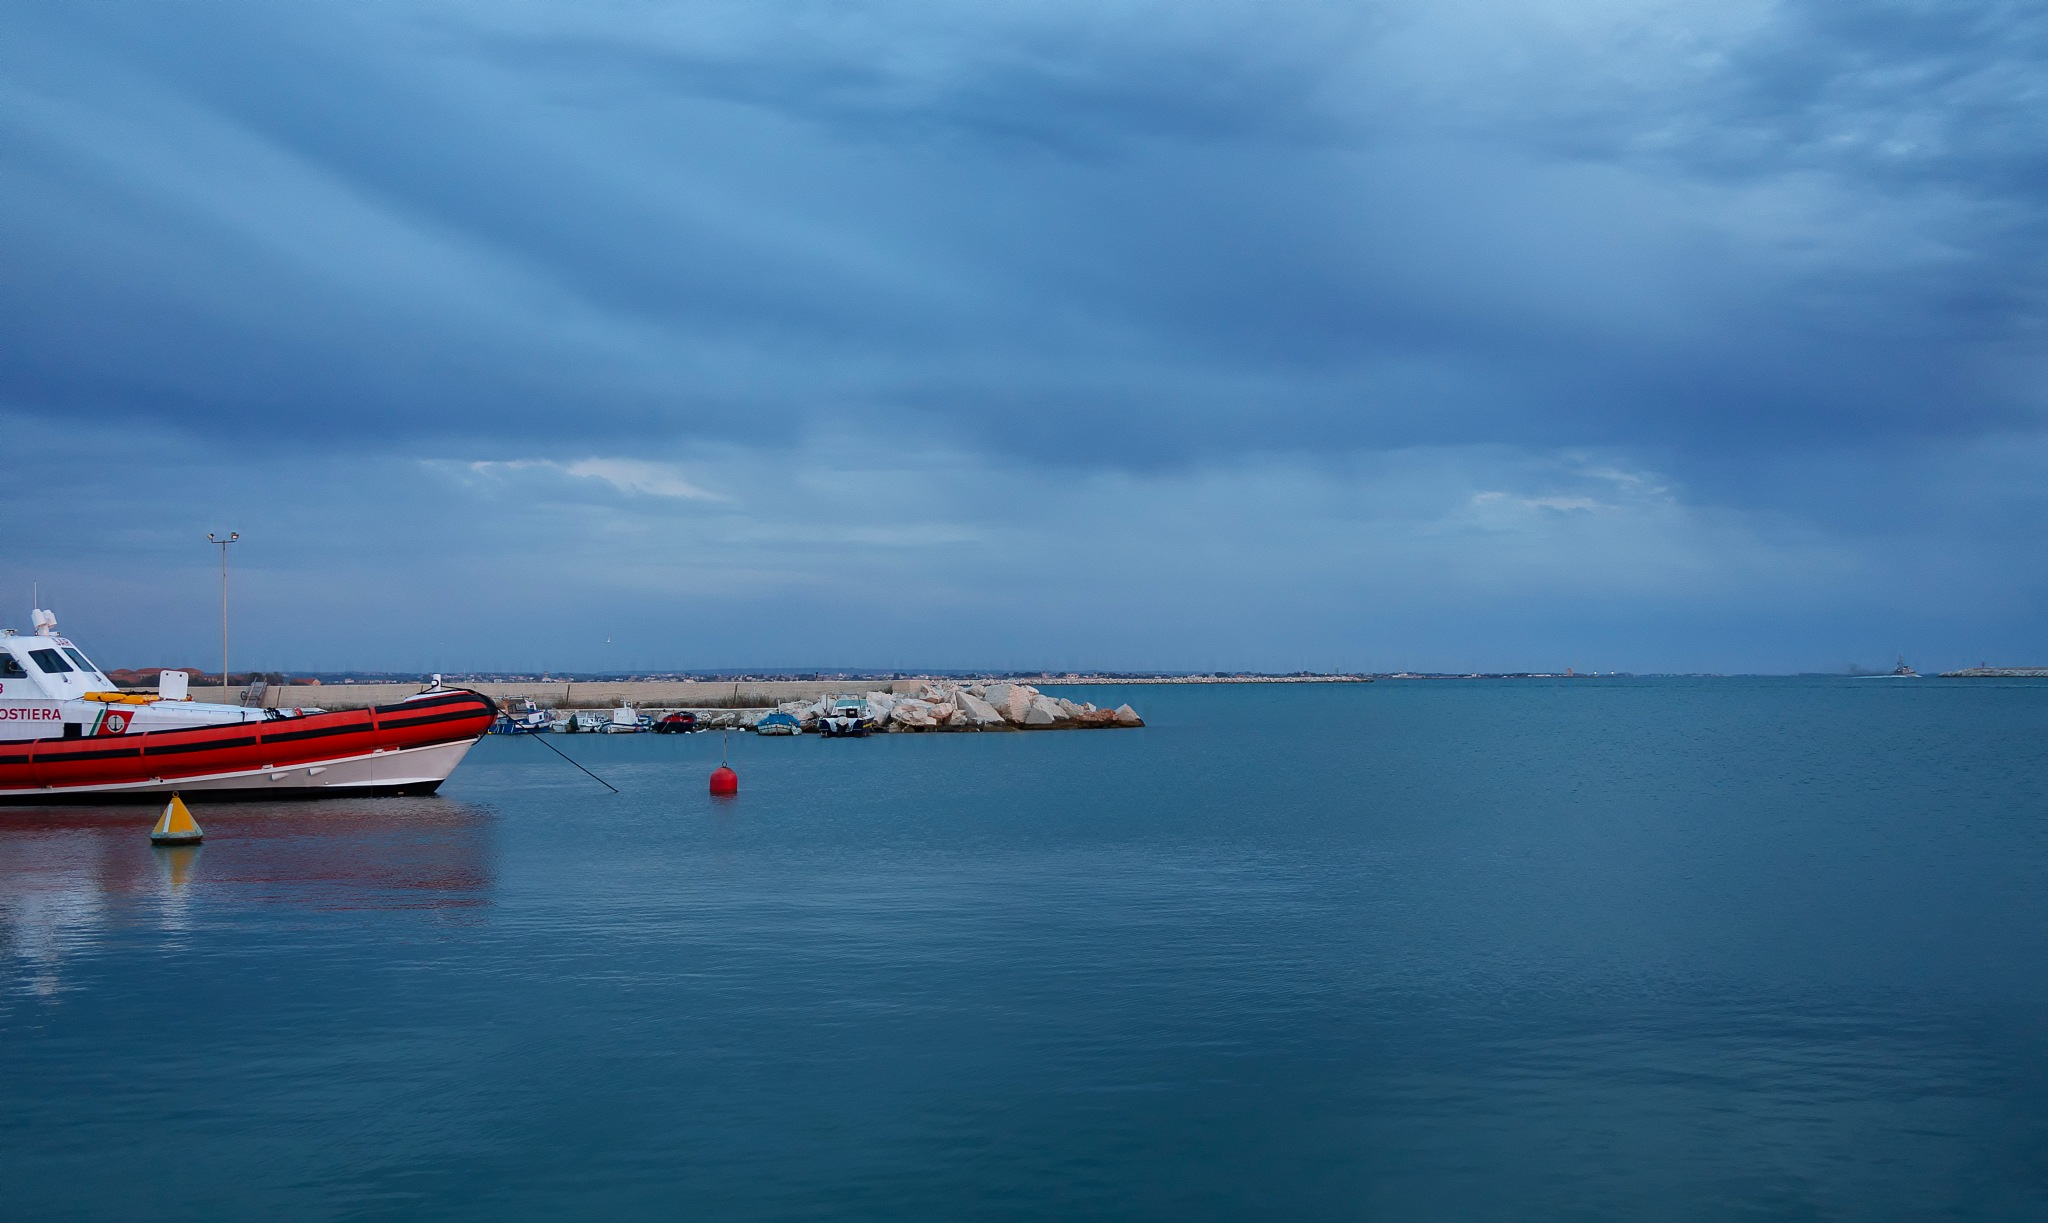 the sea under the clouds by paolotomaselloct